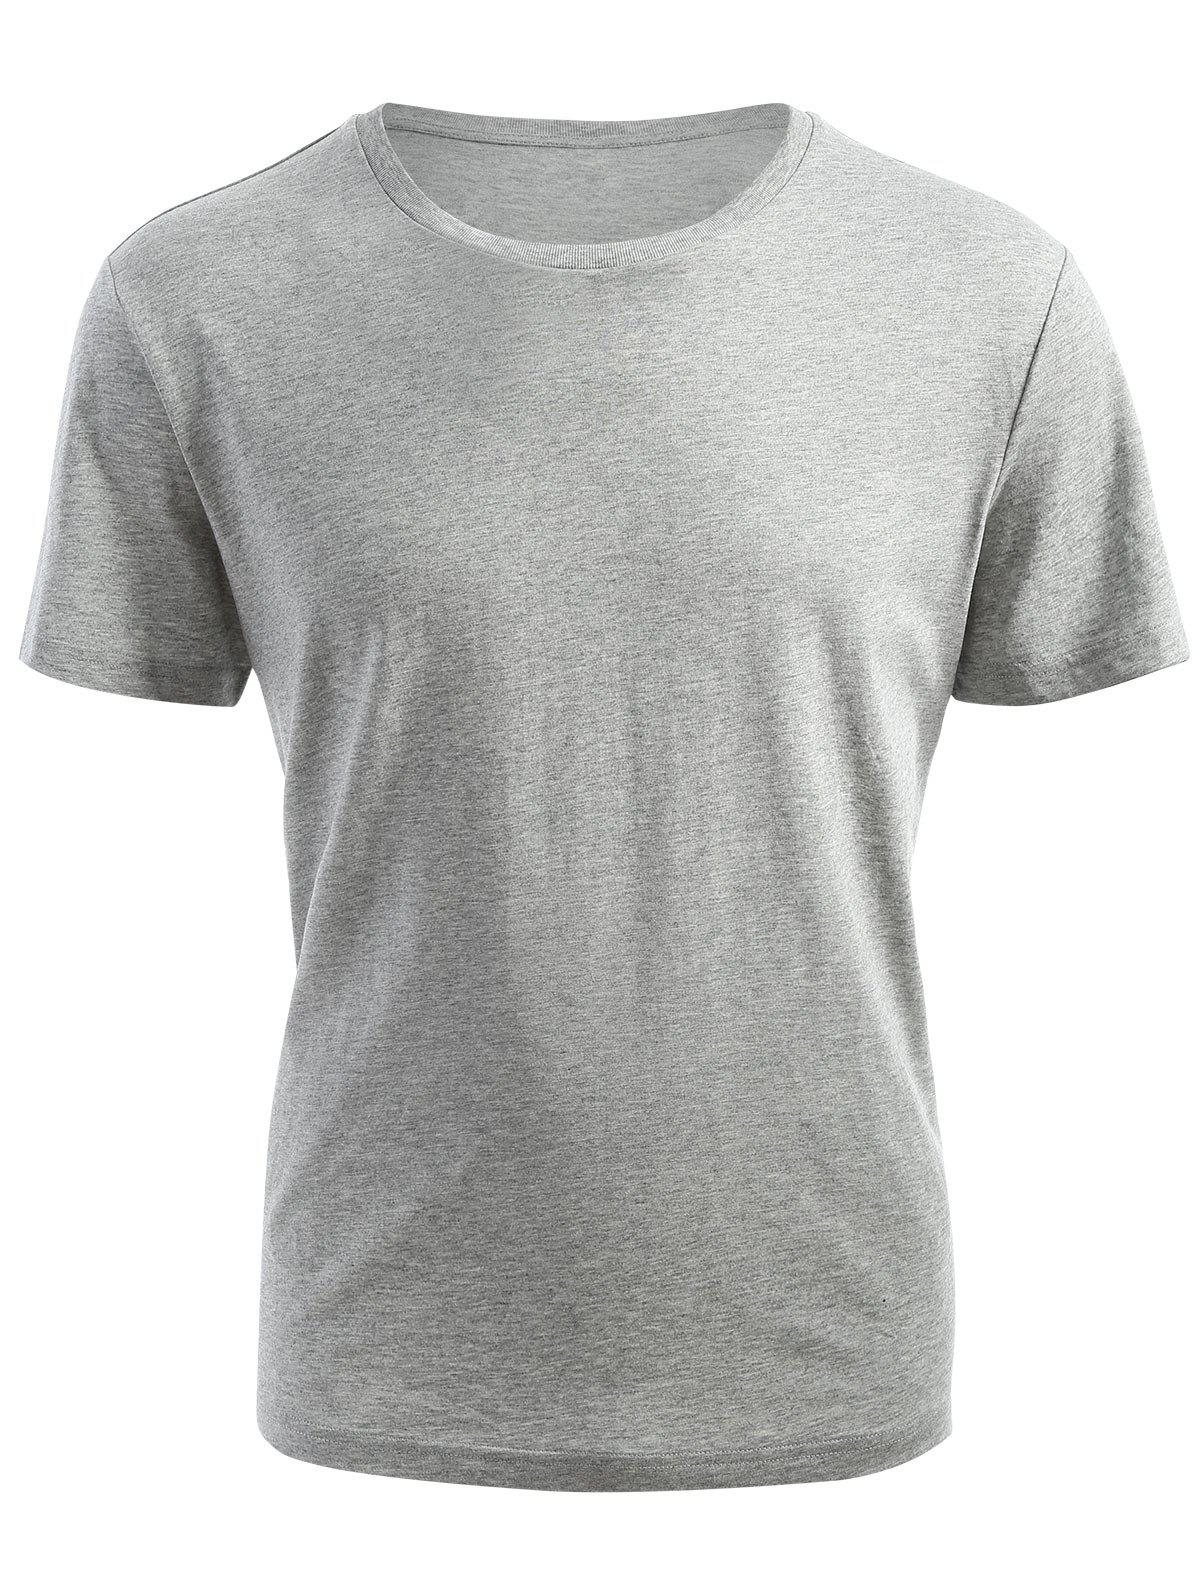 Ribbed Neck Short Sleeve T-shirt - GRAY 2XL